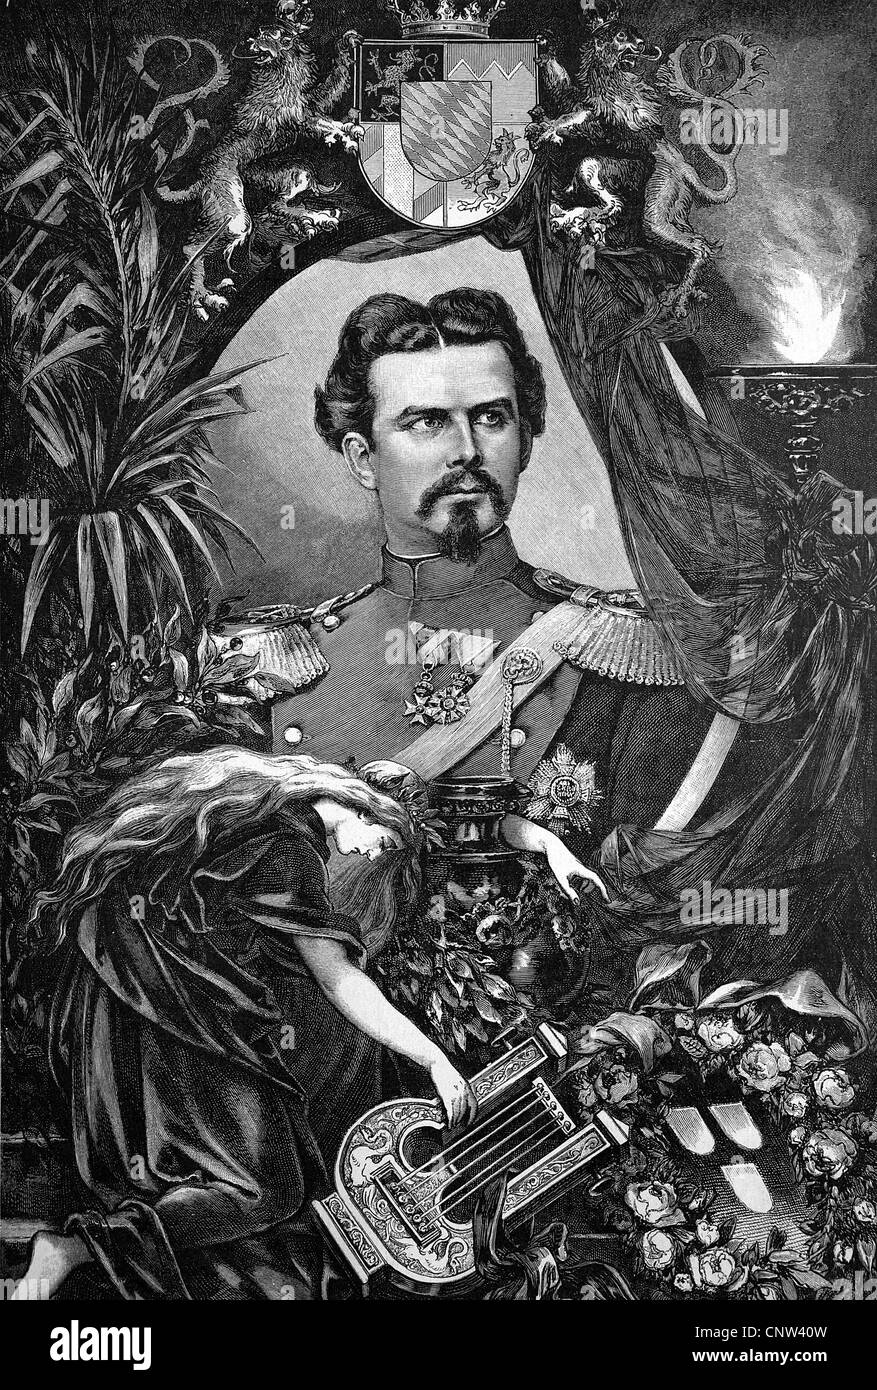 King Ludwig II of Bavaria, Ludwig II Otto Friedrich Wilhelm von Bayern, 1845 - 1886, decendant from the German royal - Stock Image